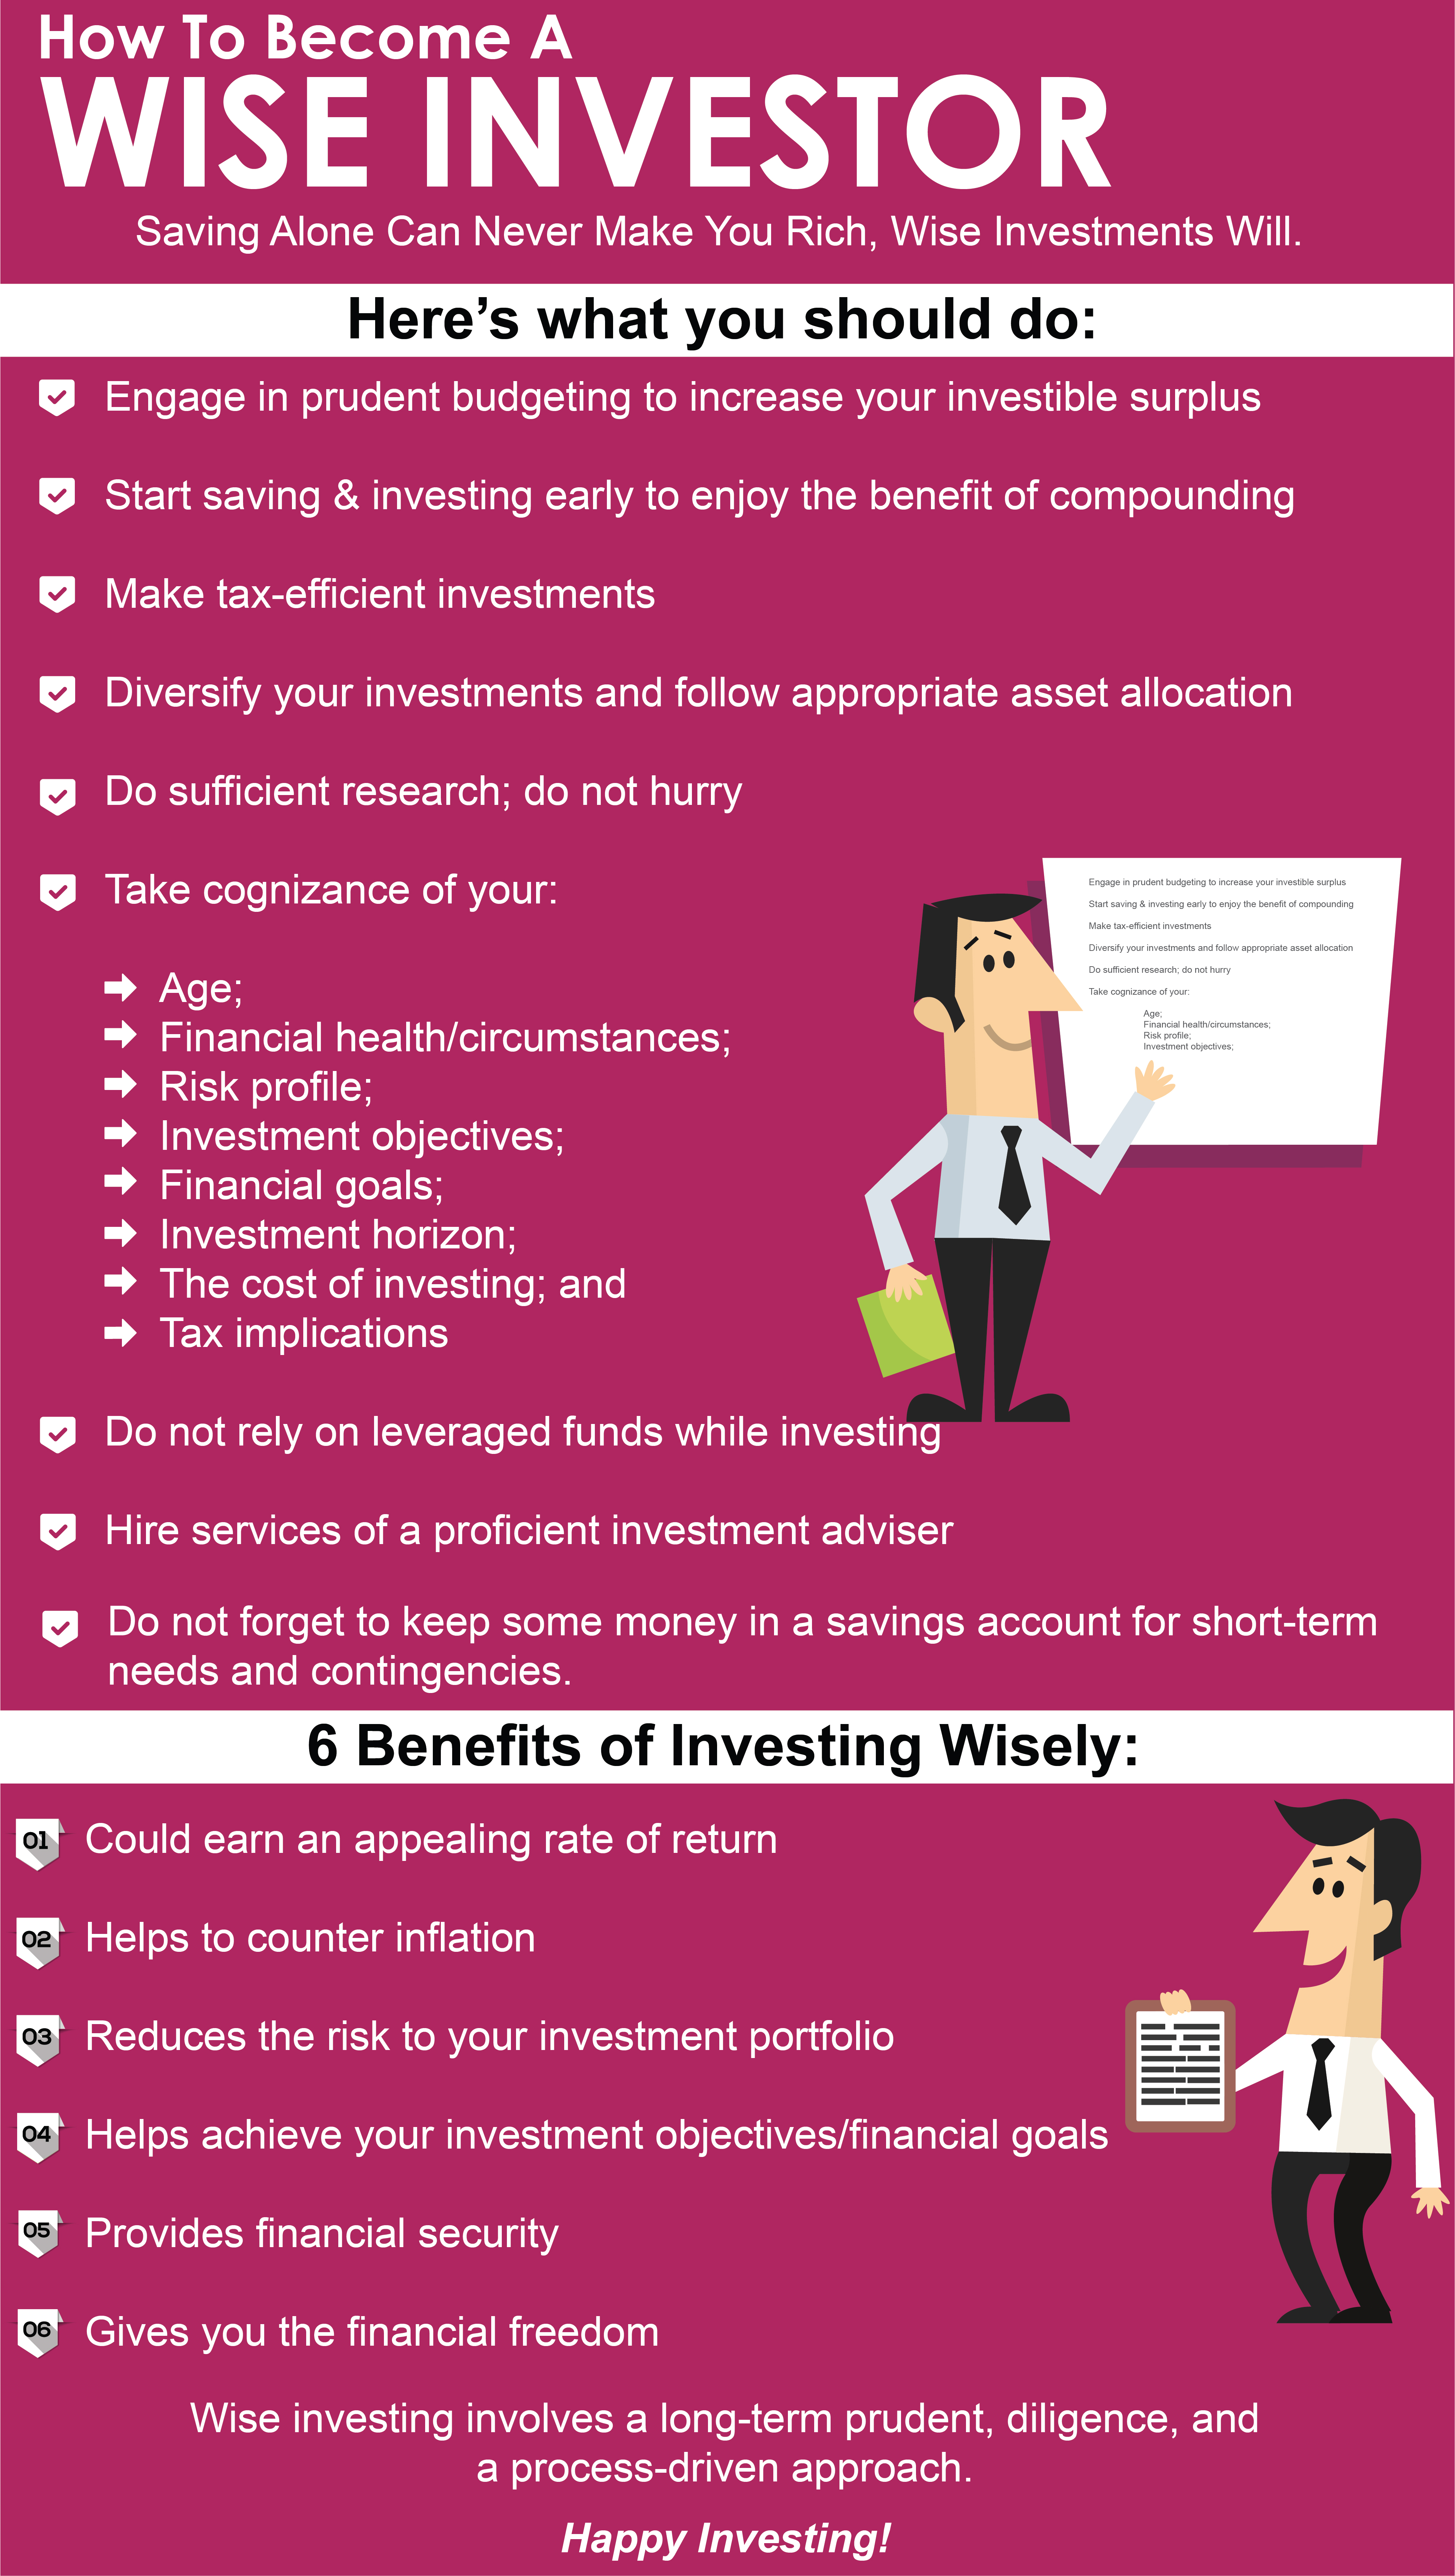 How To Become A Wise Investor